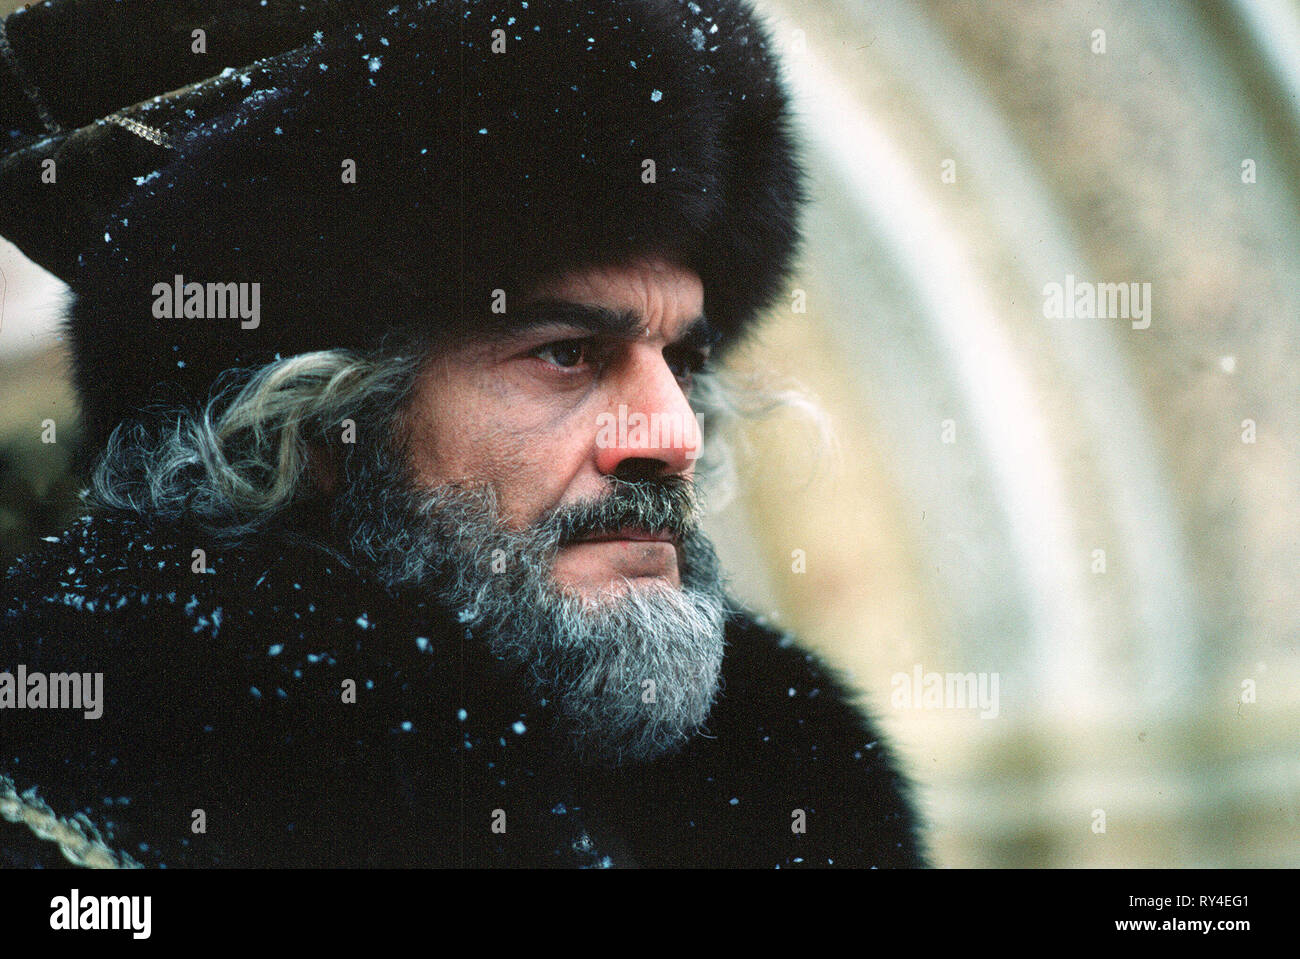 OMAR SHARIF, PETER THE GREAT, 1986 - Stock Image